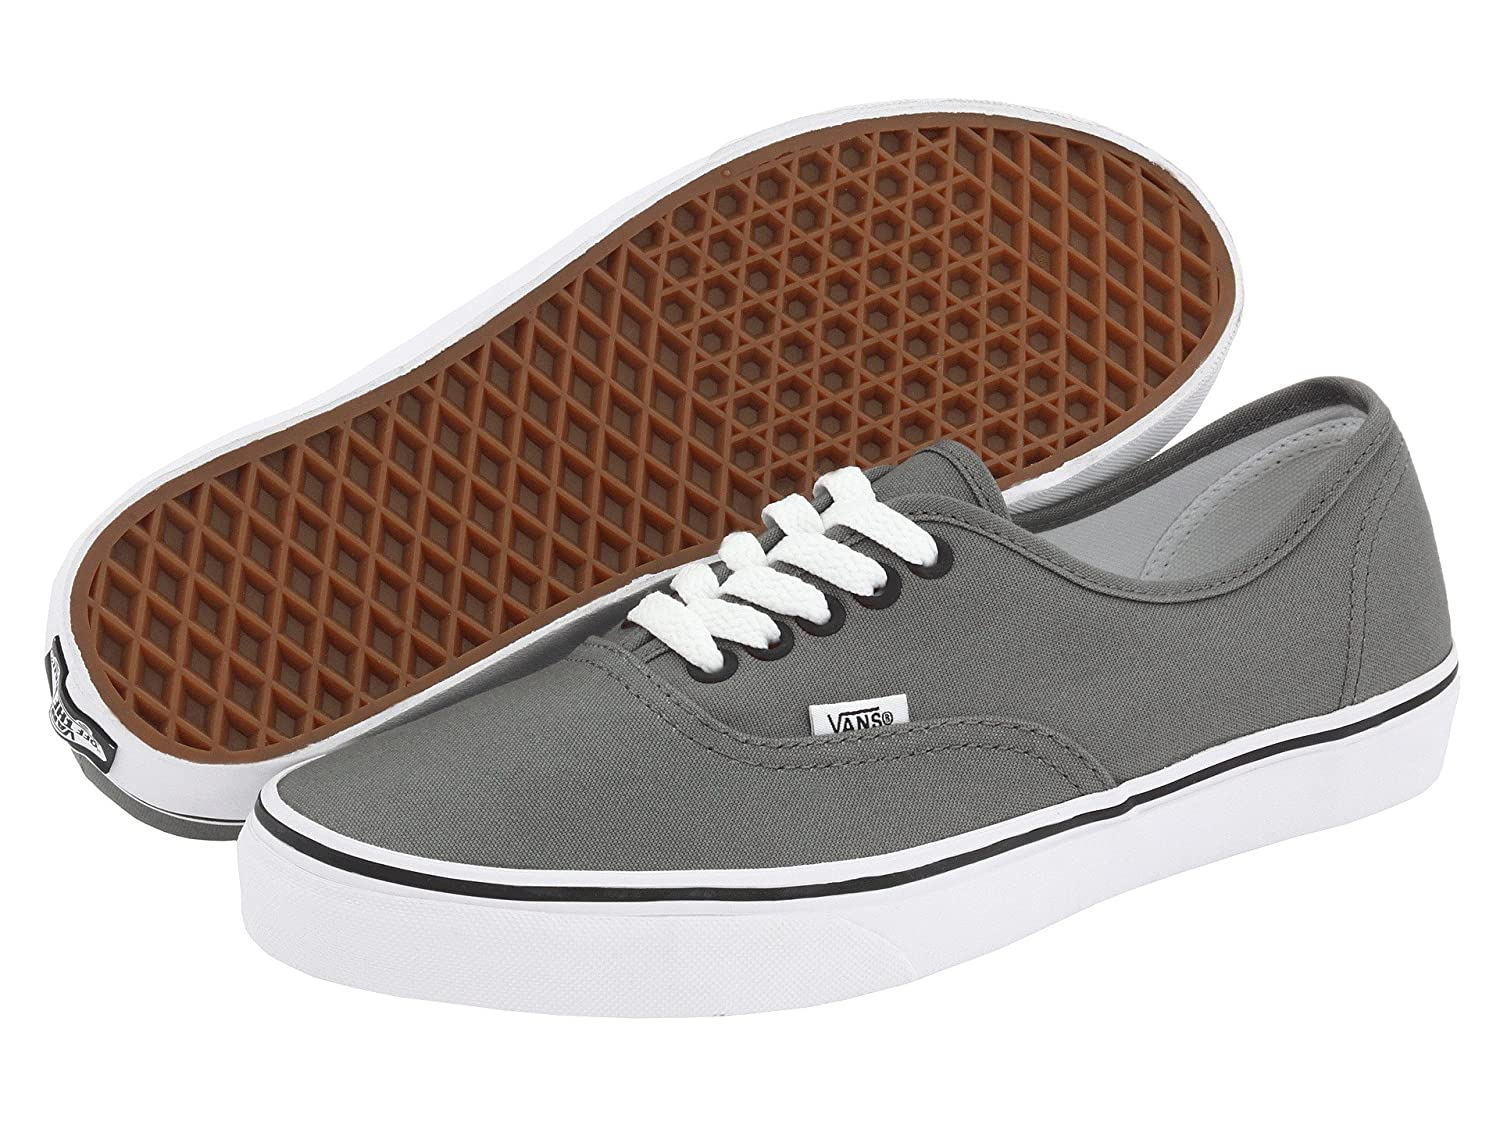 [バンズ] VANS VANS AUTHENTIC VEE3 B01N0HDM9Q 38 M EU / 6 D(M) US|Pewter/Black Pewter/Black 38 M EU / 6 D(M) US